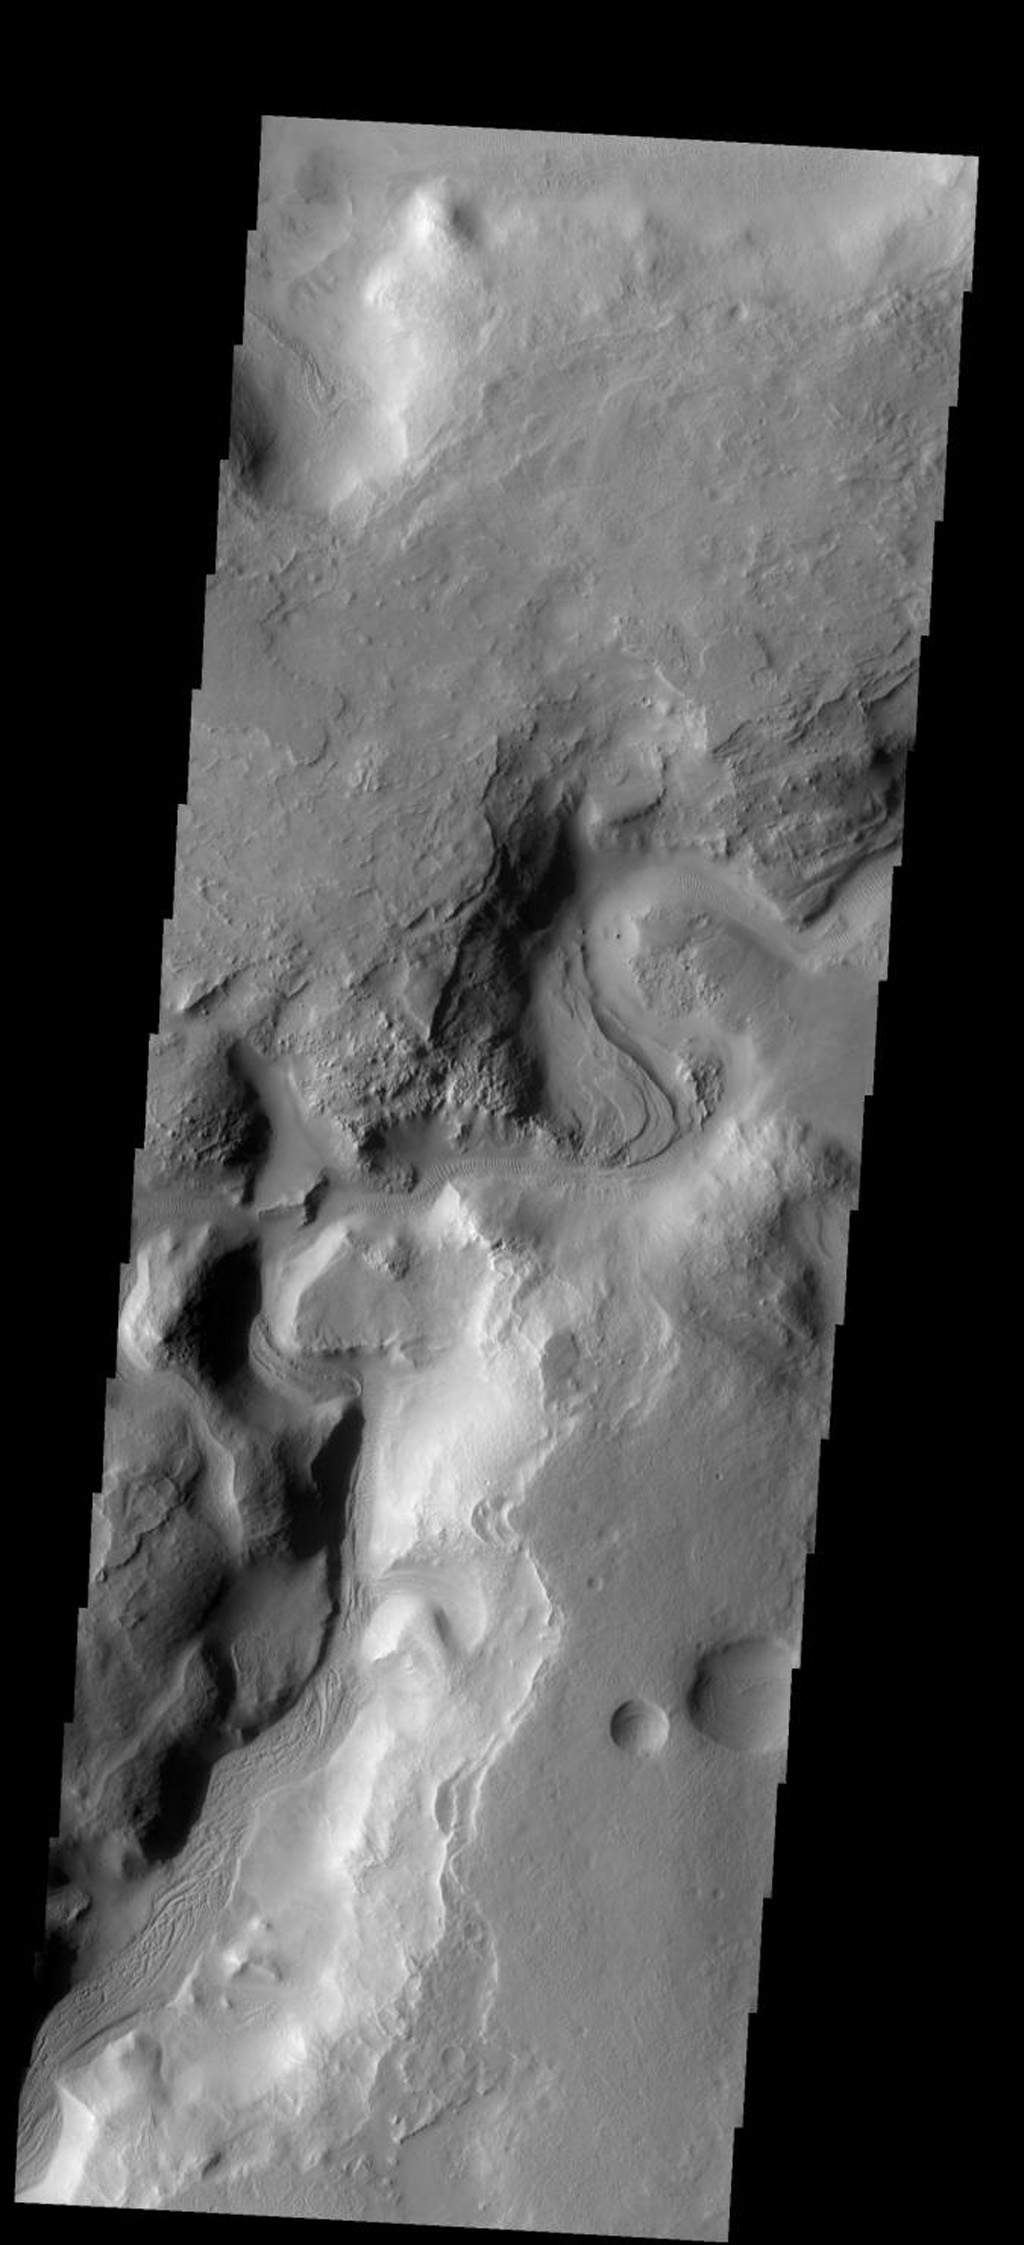 A portion of Auqakuh Vallis on Mars is shown in this image from NASA's 2001 Mars Odyssey spacecraft.